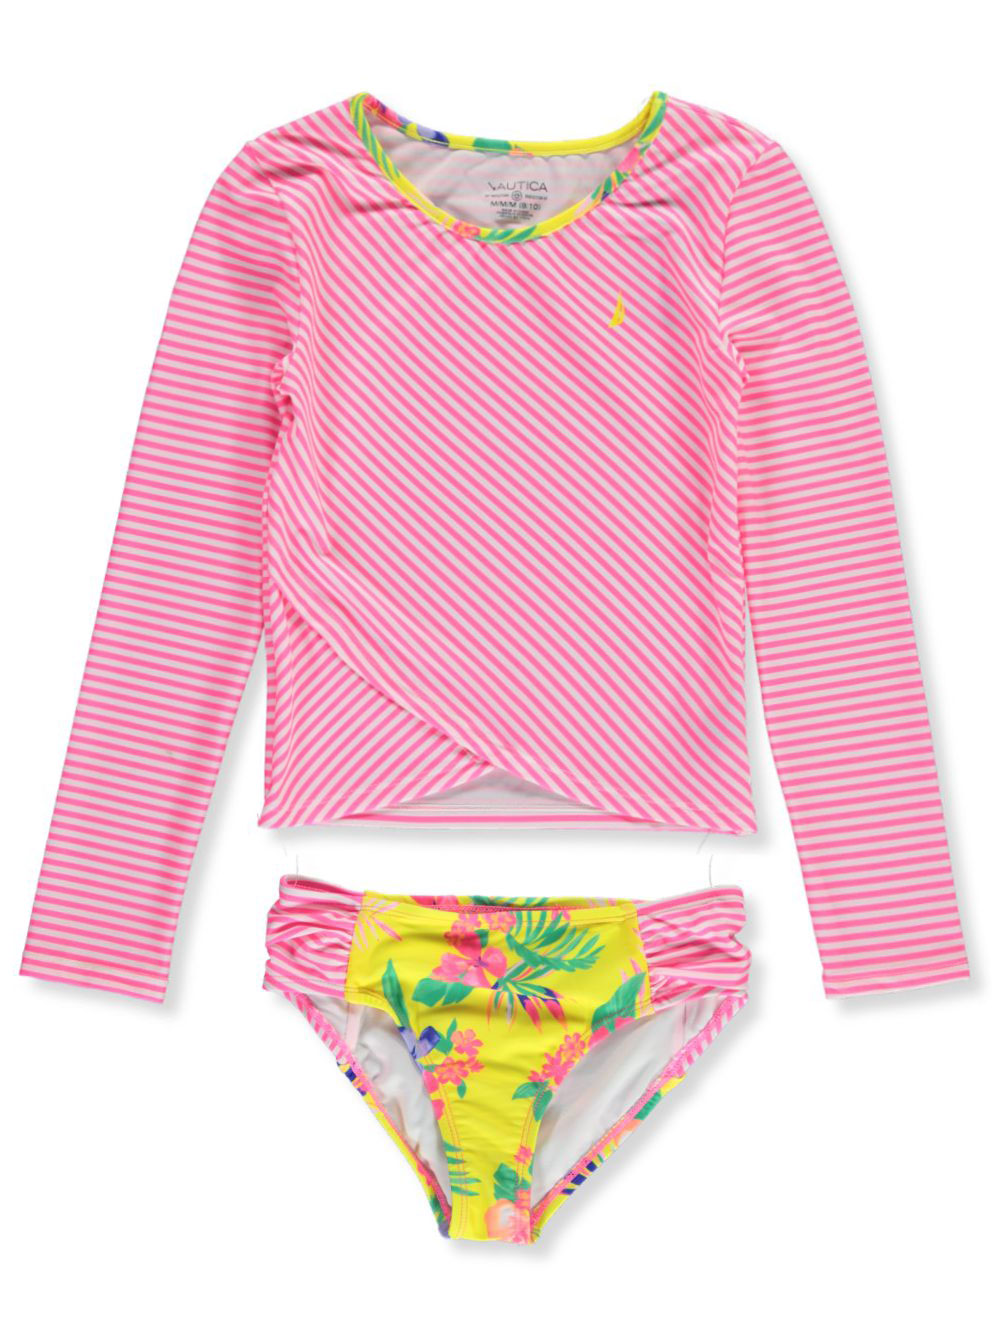 Size 4t Swimwear for Girls